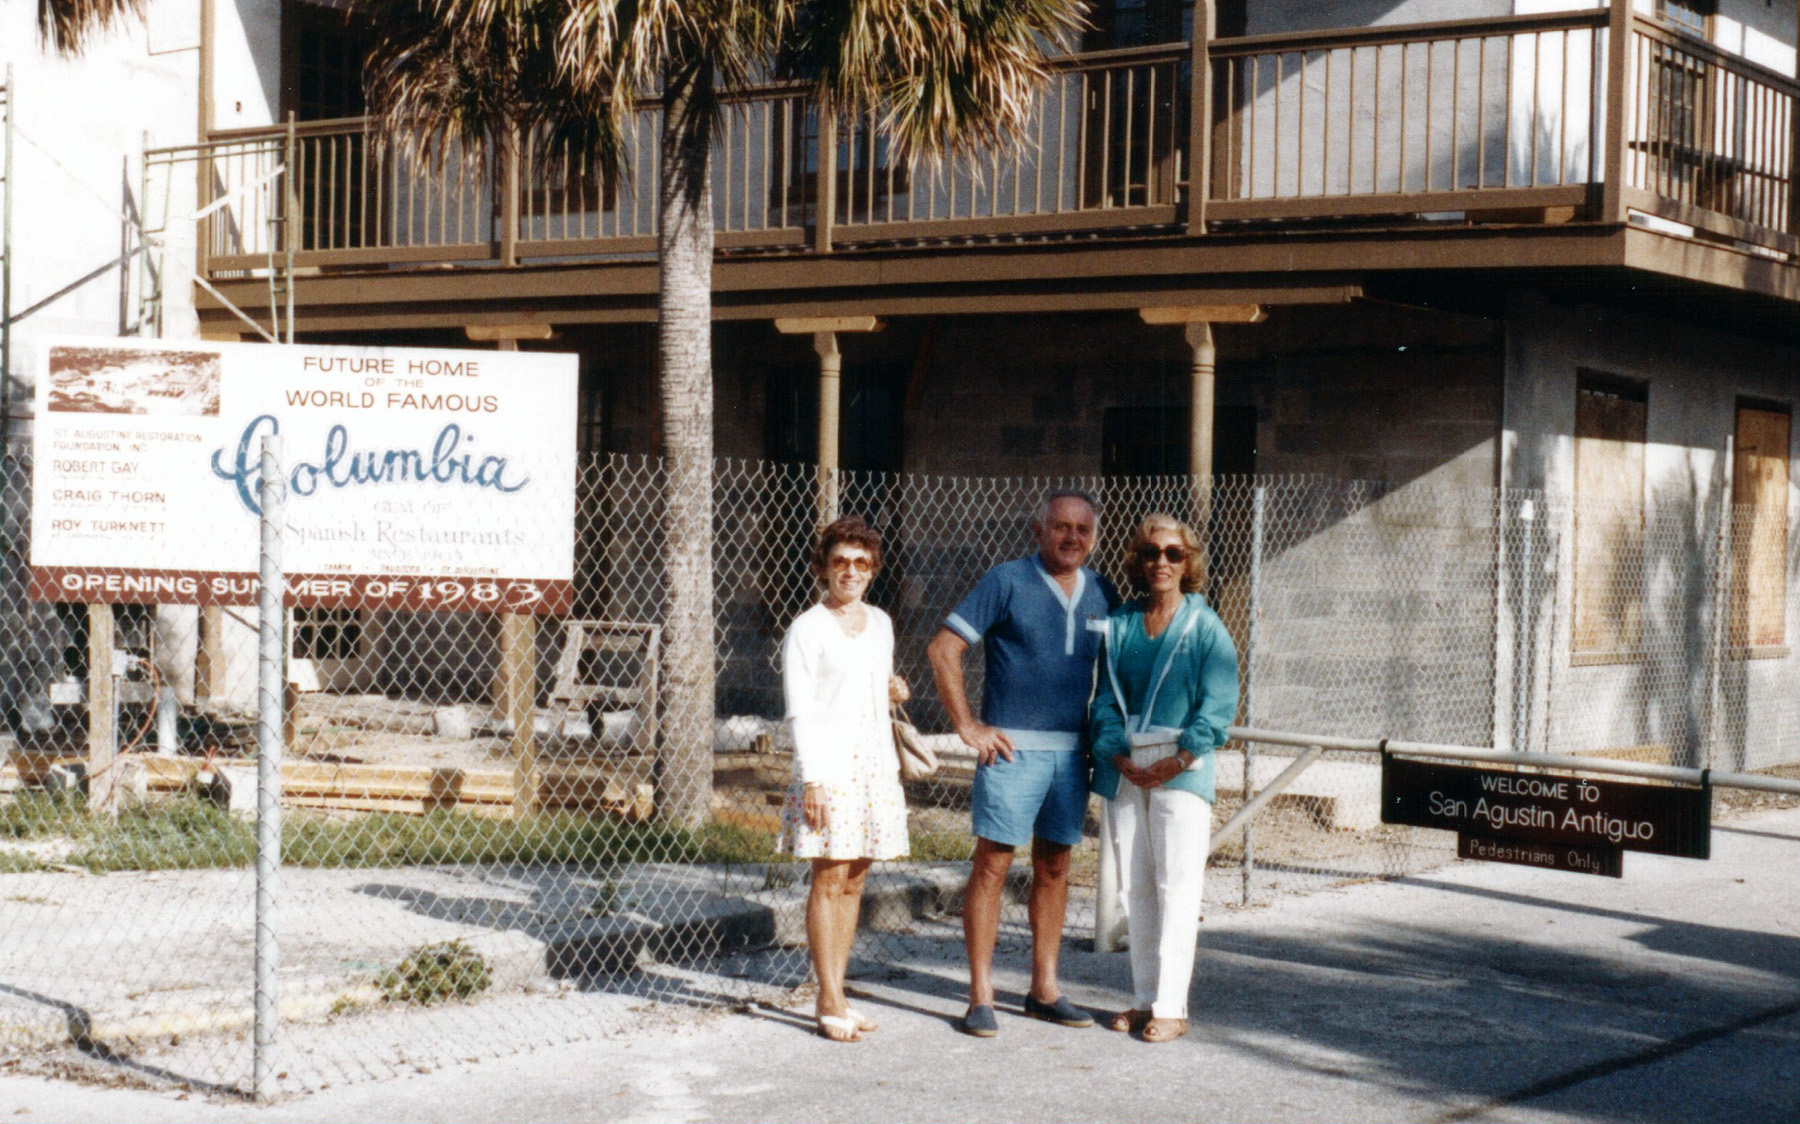 The author's aunt, dad and mom visited soon after he and his wife moved to St. Augustine in February 1983. The Columbia Restaurant was under construction. Photo by Ed Albanesi